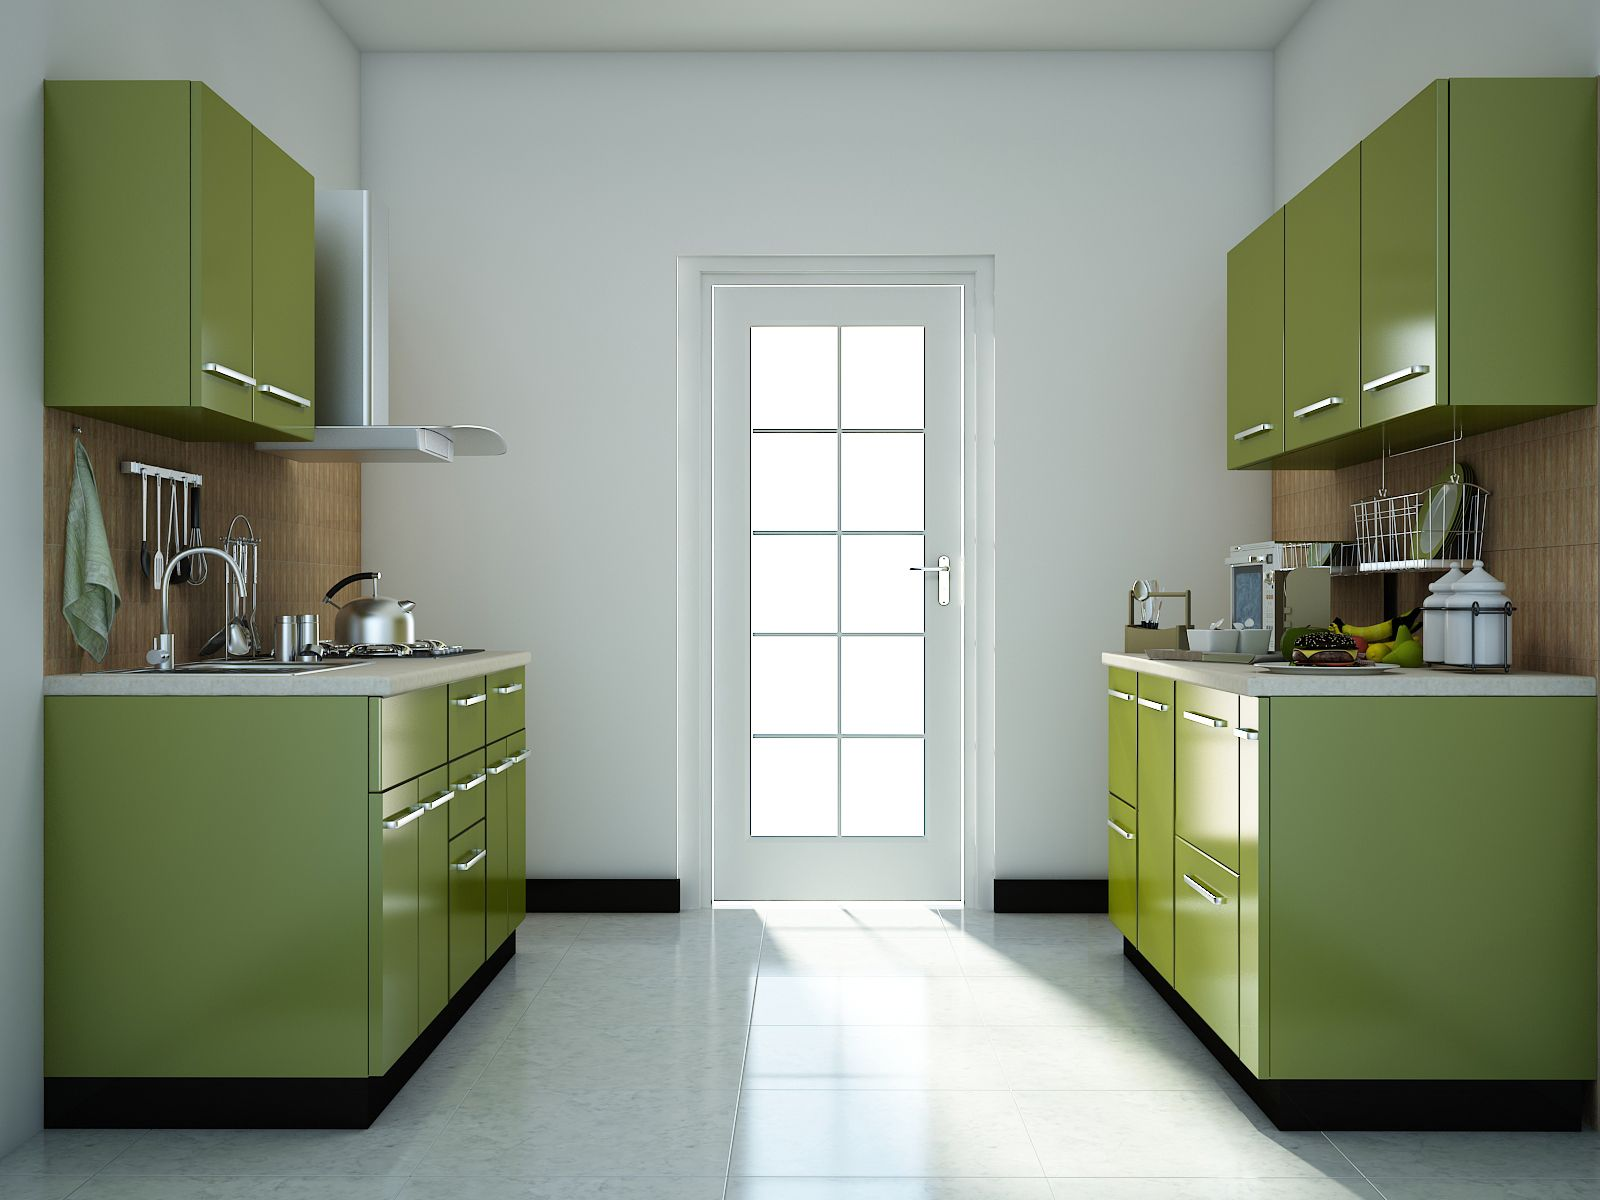 Green Modular Kitchen Designs Parallel Shaped Modular Kitchen Designs Pinterest Kitchen